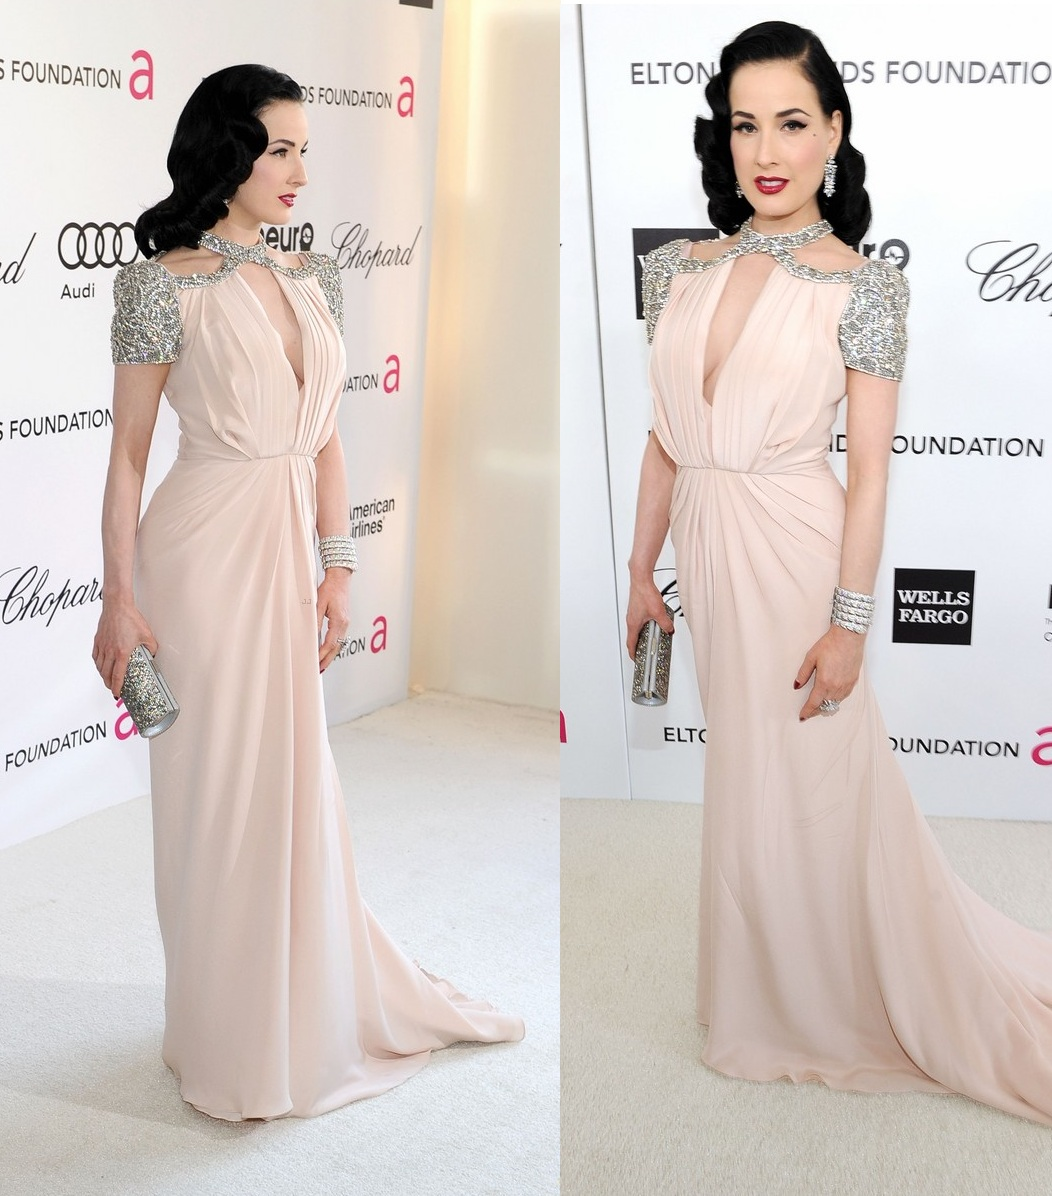 Wedding Dita Von Teese Wedding Dress beta pics dita von teese inspired dresses http1 bp blogspot com trtkpy4xtzut0zd8swjkwi scarletstiletto teese